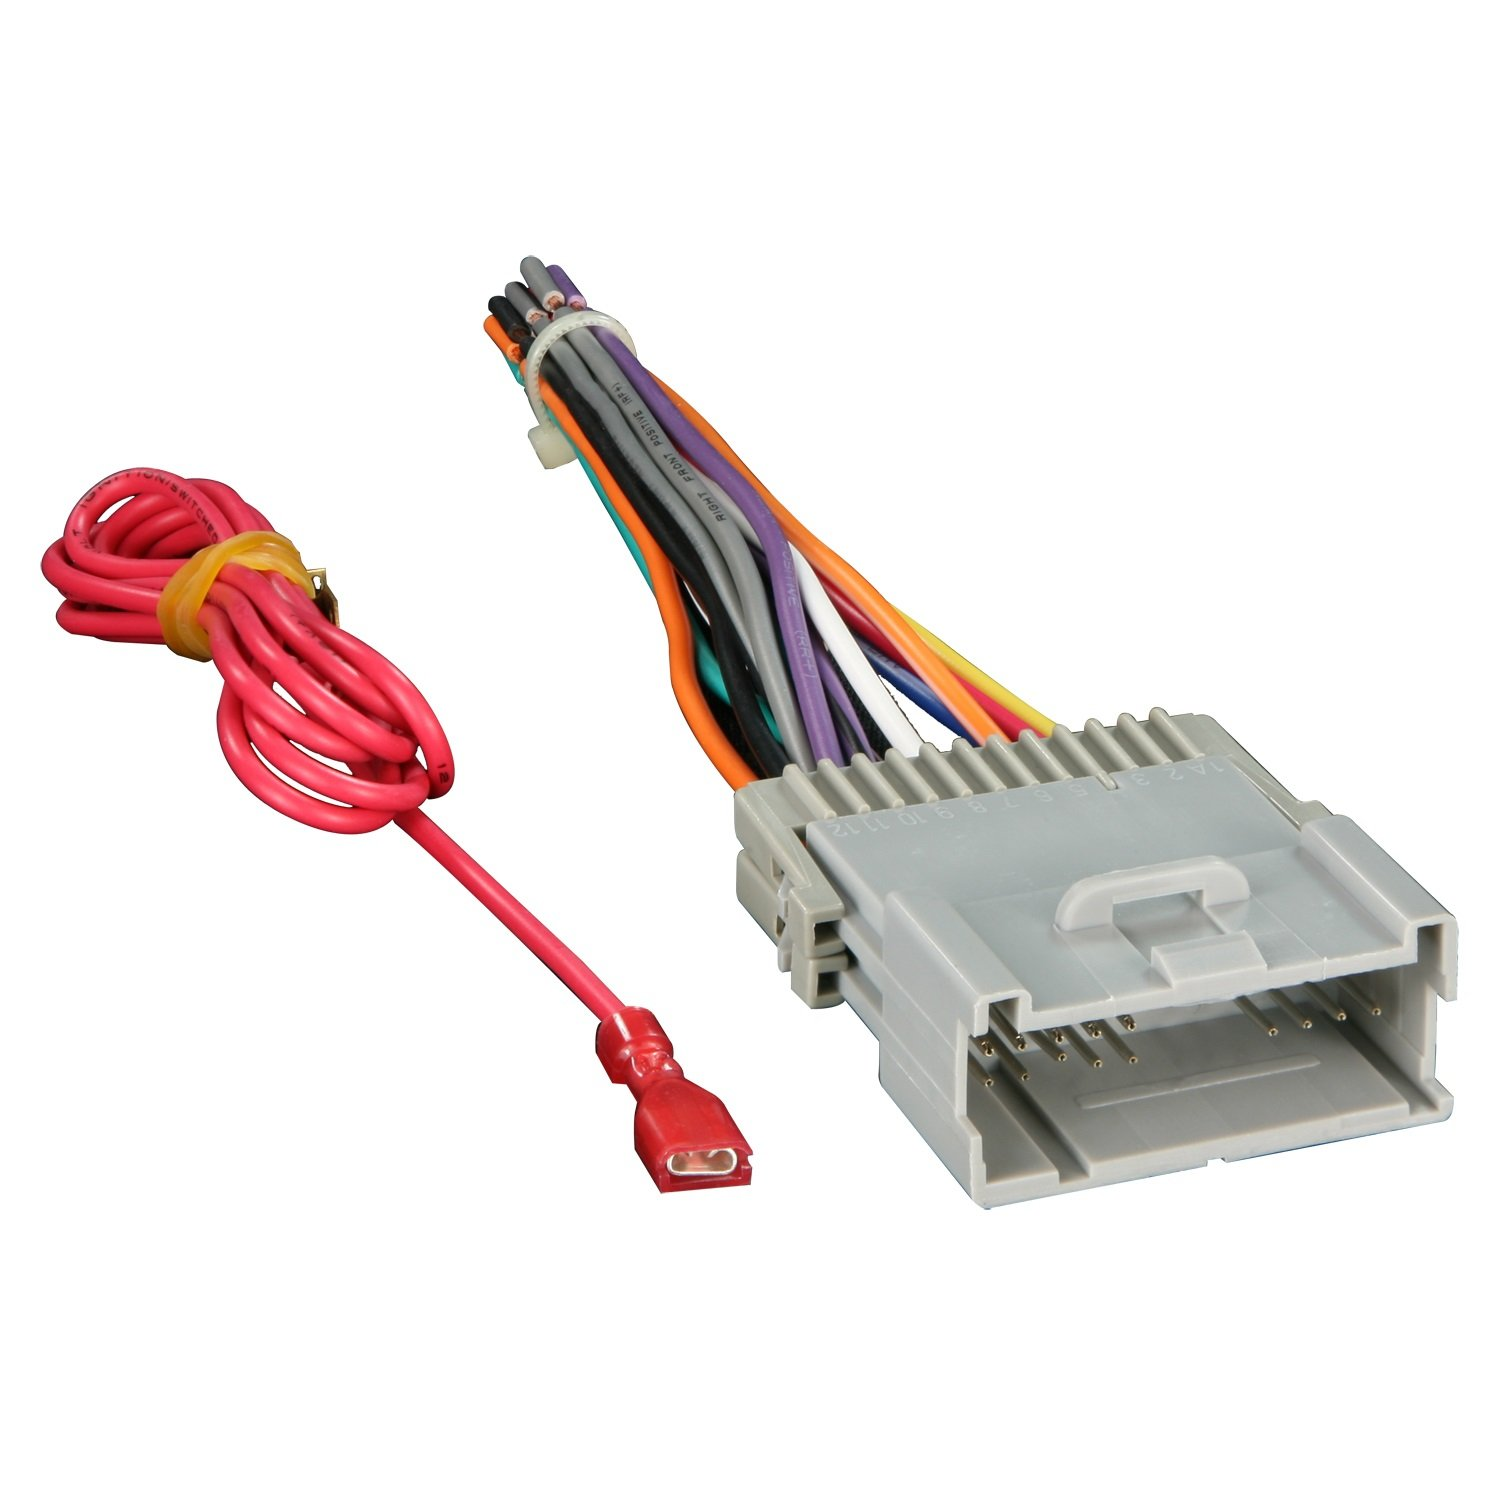 61eewxp9orL._SL1500_ amazon com metra 70 2003 radio wiring harness for gm 98 08 2015 GMC Yukon XL Denali at edmiracle.co